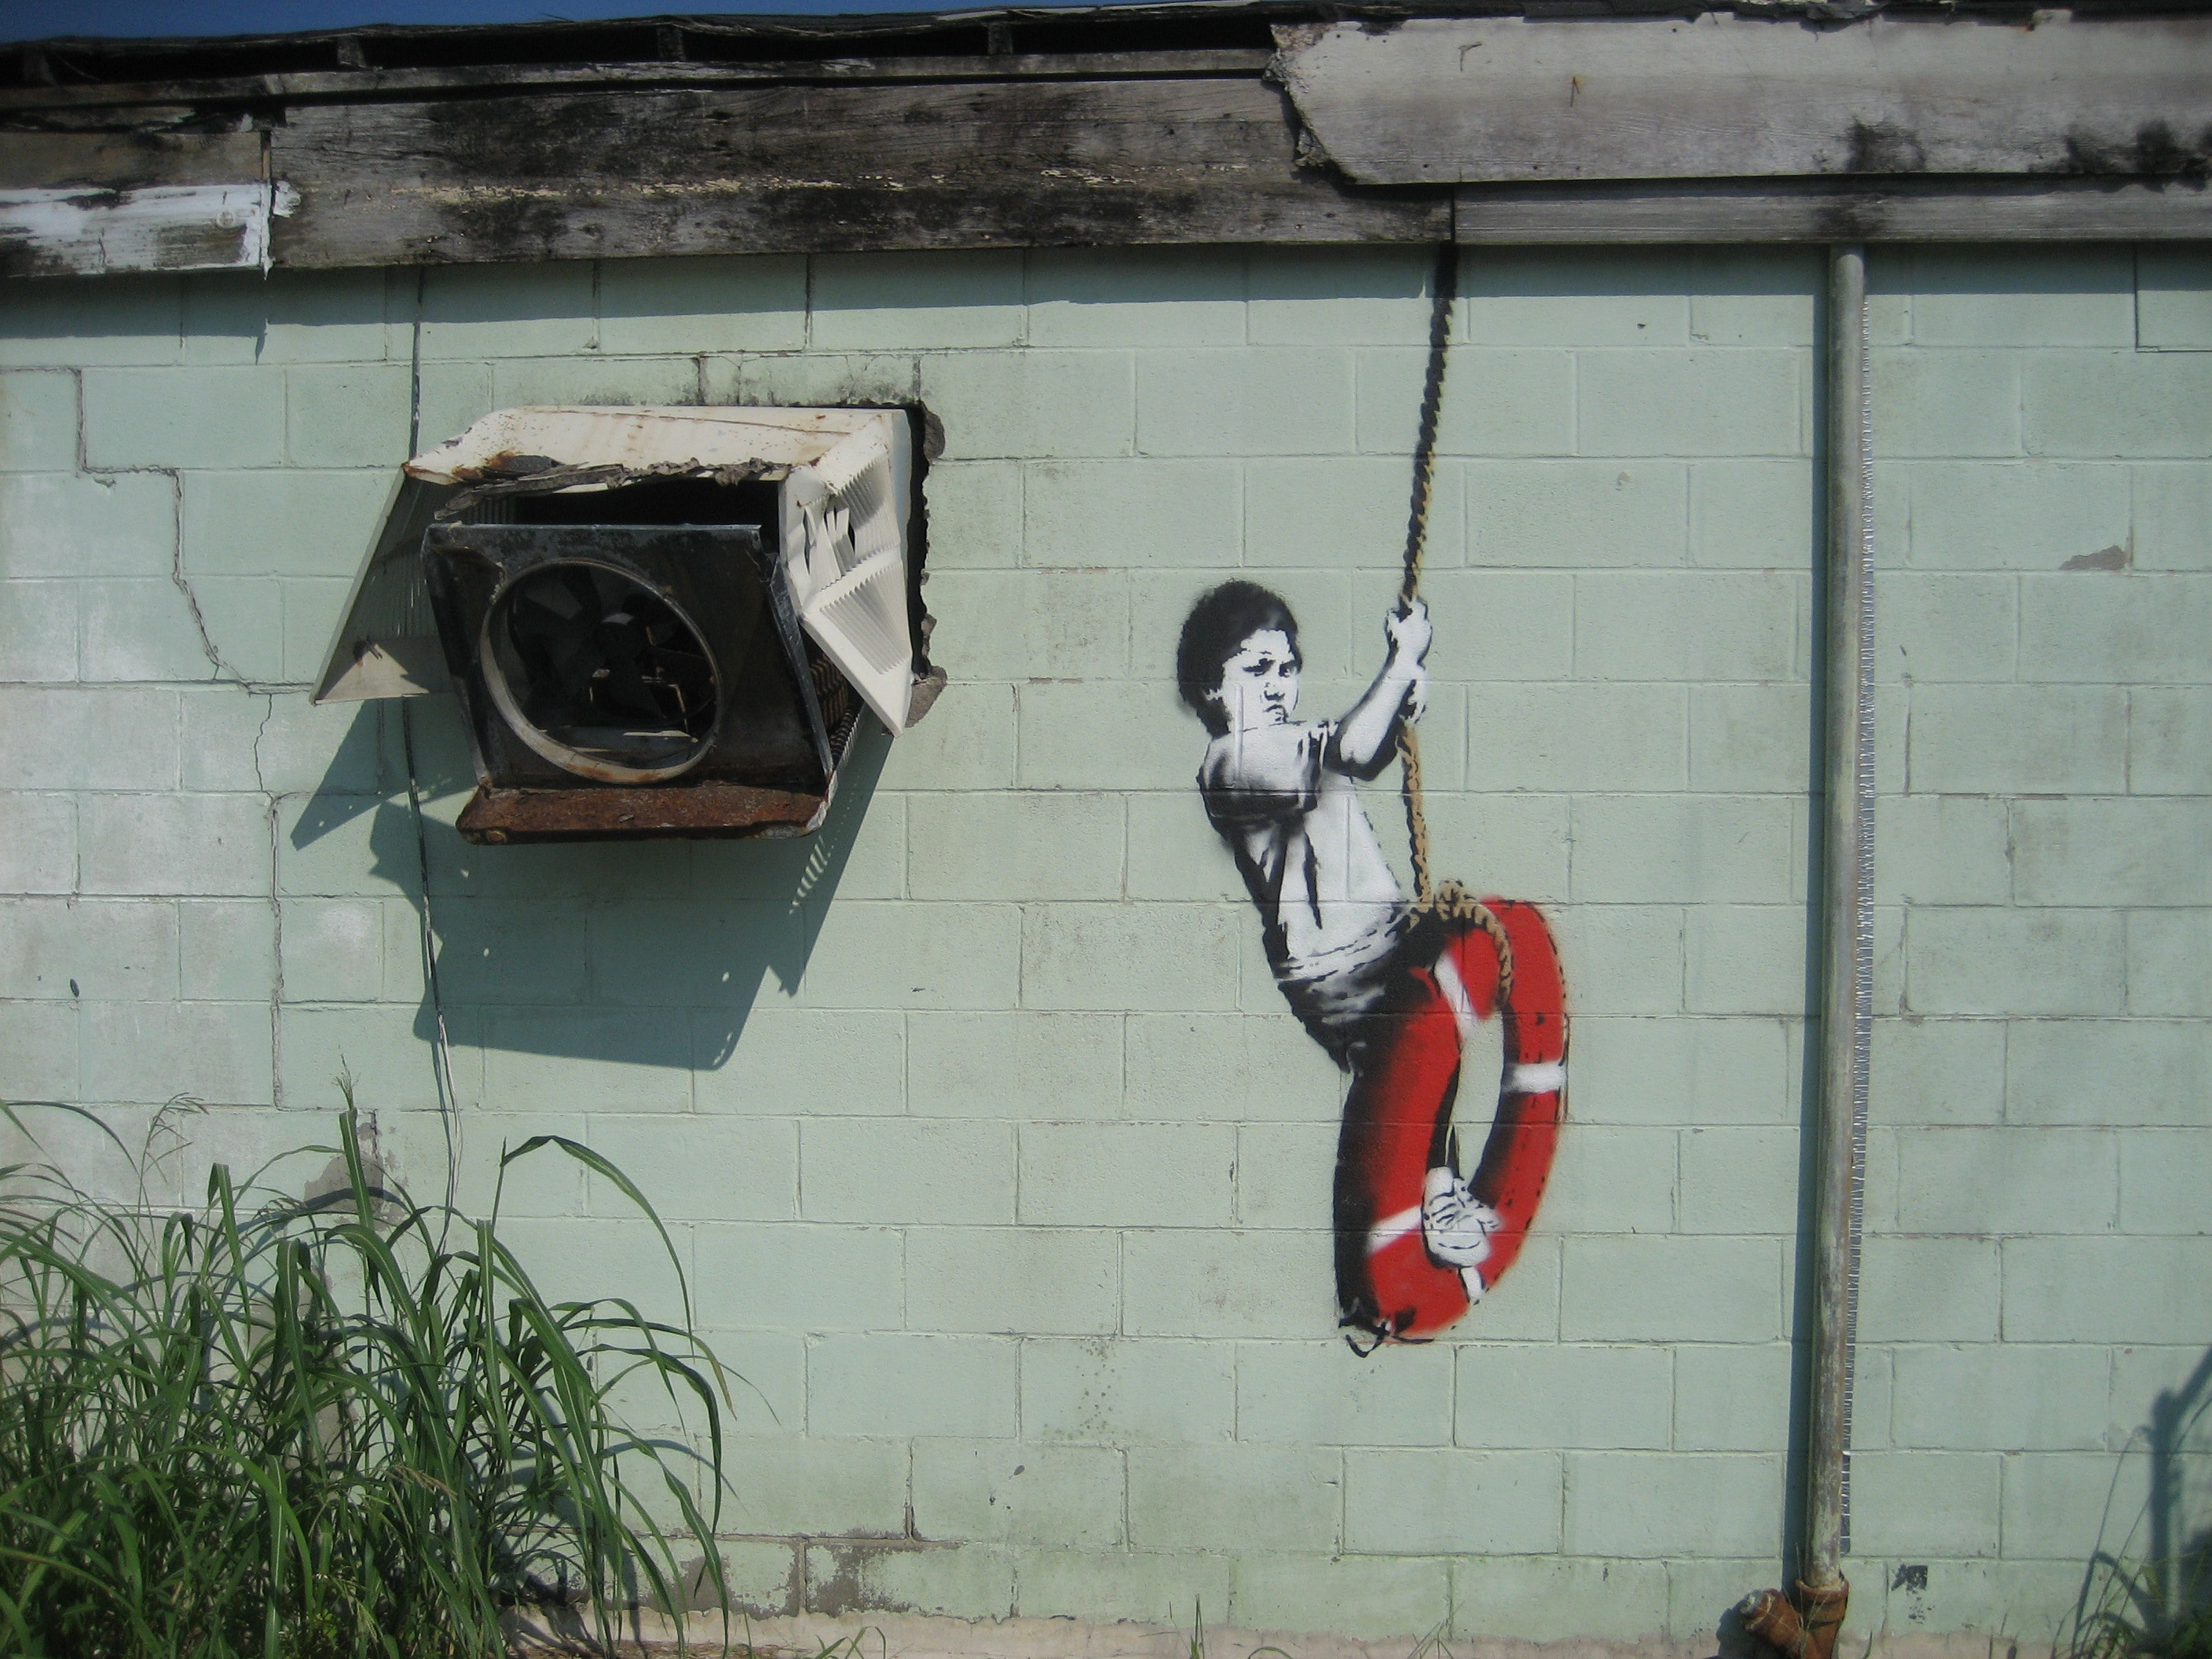 Banksy Swinger in New Orleans. Photo credit: Infrogmation of New Orleans, CC BY-SA